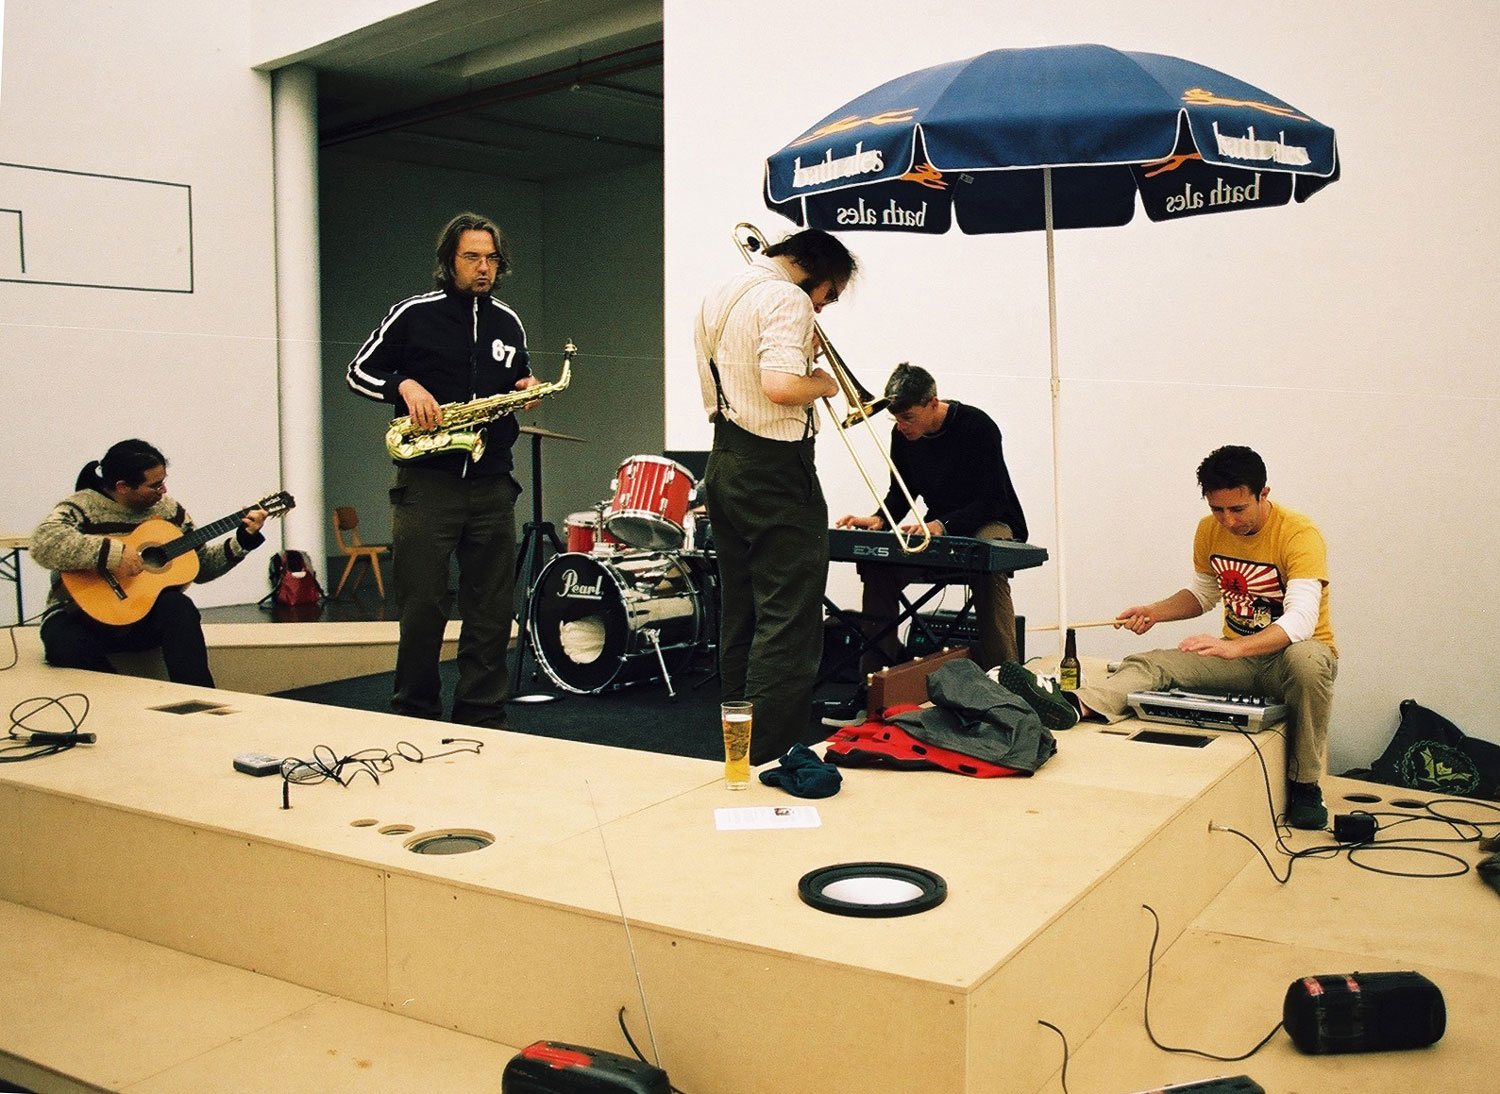 A Damaged Plane, 2007 during a performance by Cube Orchestra...